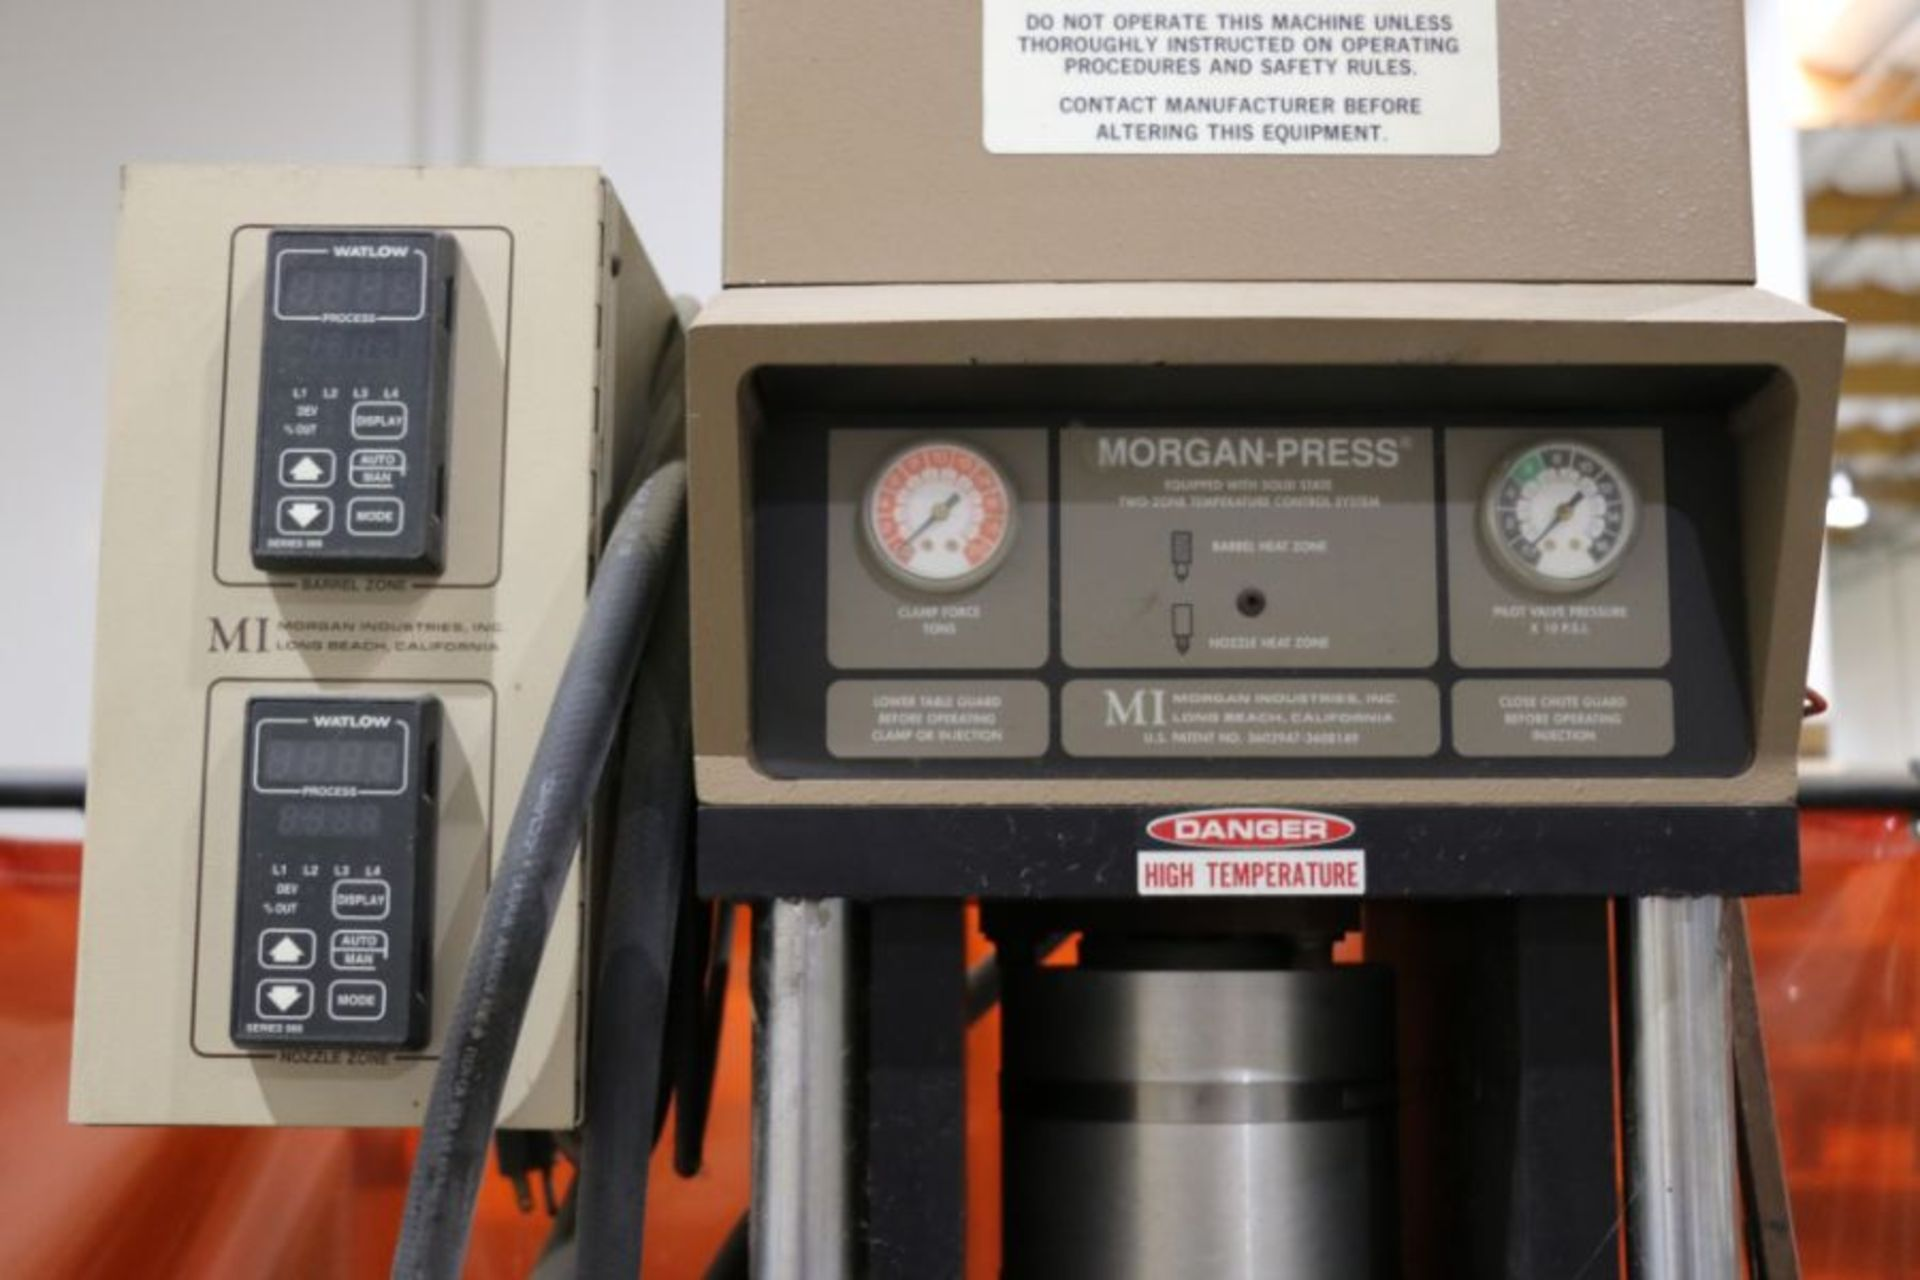 Morgan Press G-100T Vertical Plastic Injection Molding Press, New 2001 - Image 3 of 4